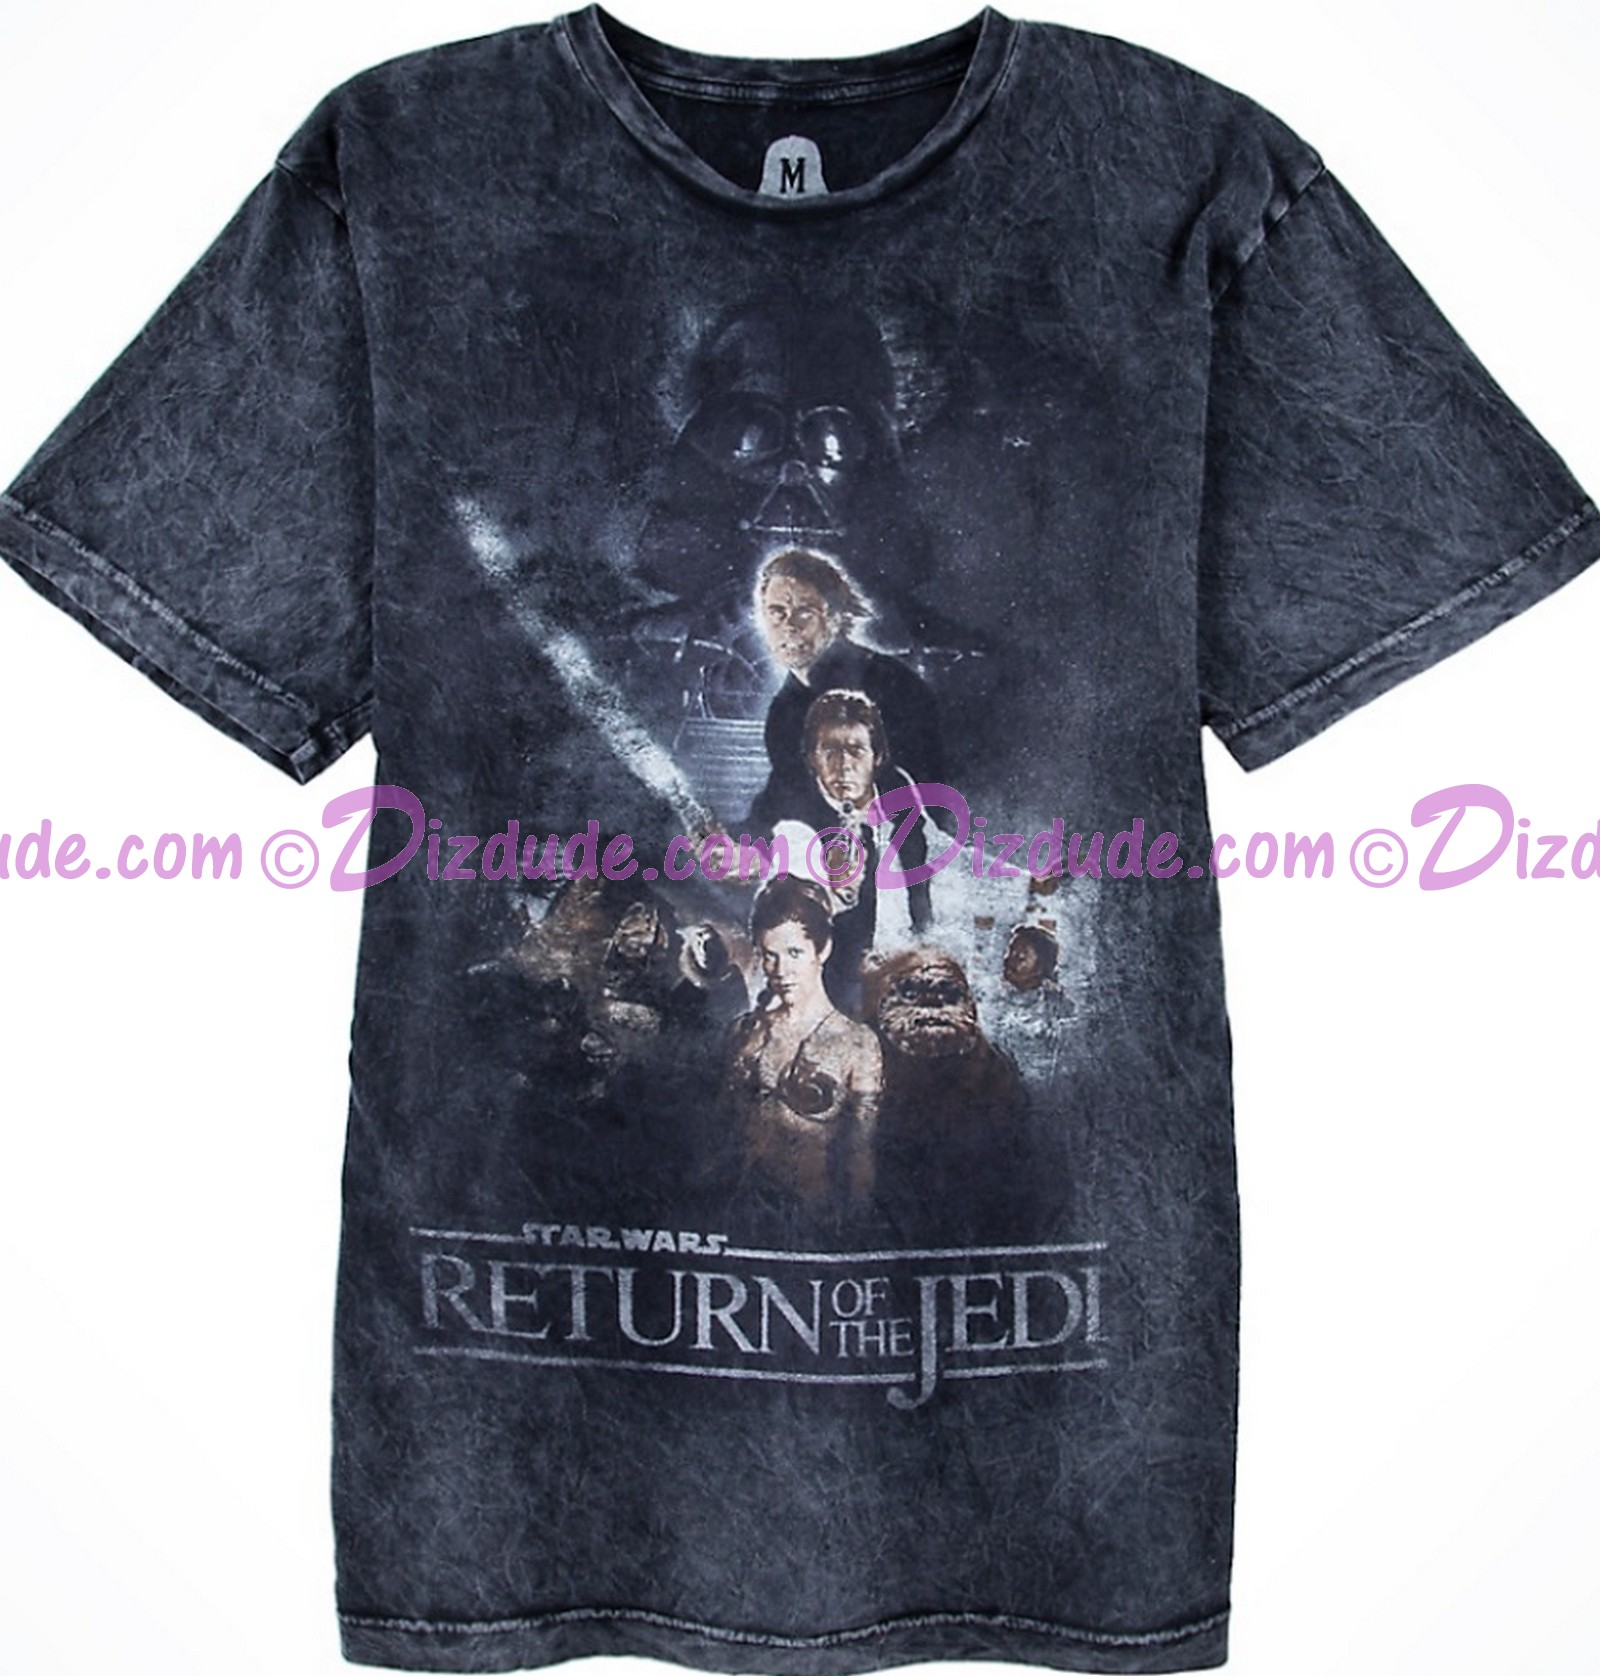 Return Of The Jedi Acid Wash Style Poster Adult T-Shirt (Tshirt, T shirt or Tee) - Disney's Star Wars © Dizdude.com